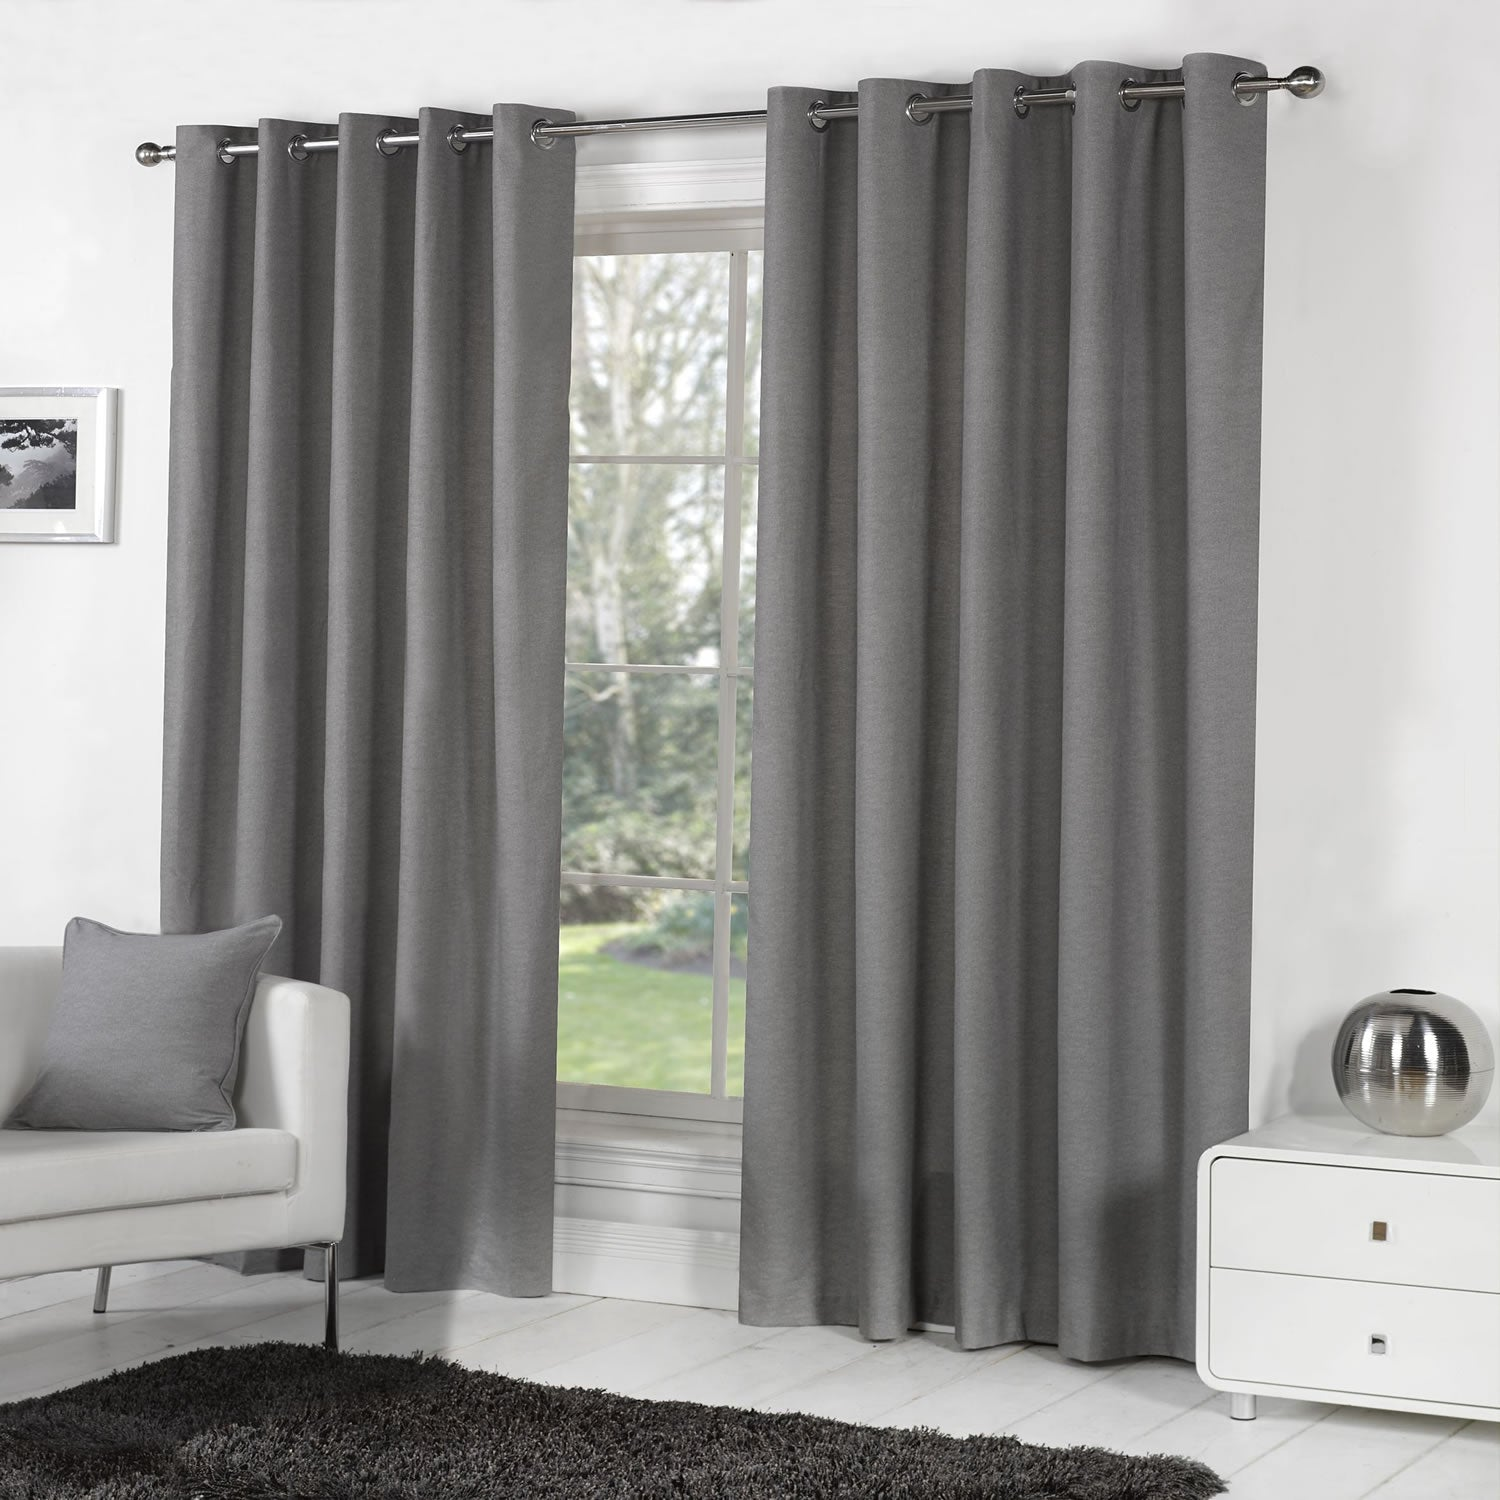 Sorbonne Plain Lined Eyelet Curtains Charcoal - 46'' x 54'' - Ideal Textiles